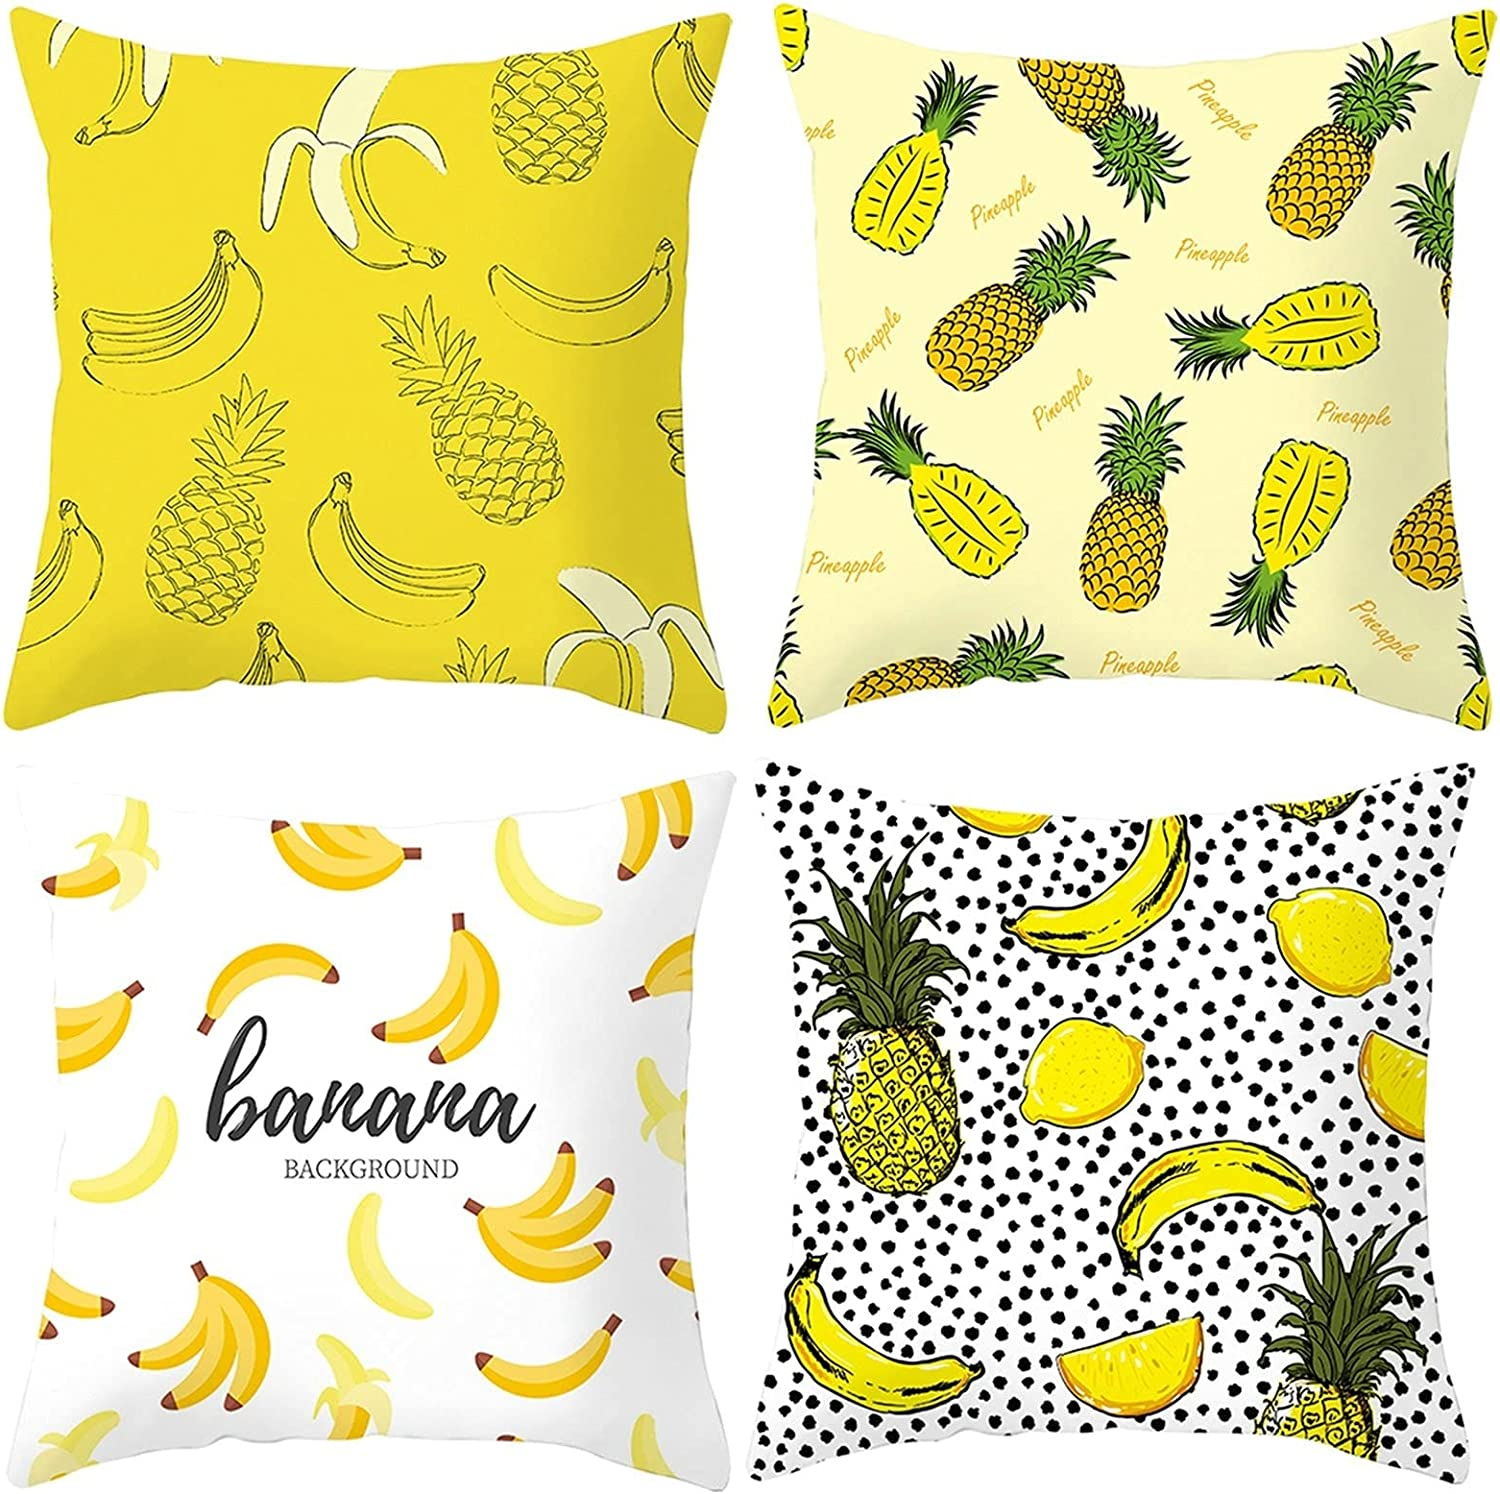 Daesar Soft Throw Pillow Covers Same day shipping Limited time for free shipping Kids Pillowcases B 4 Pack White